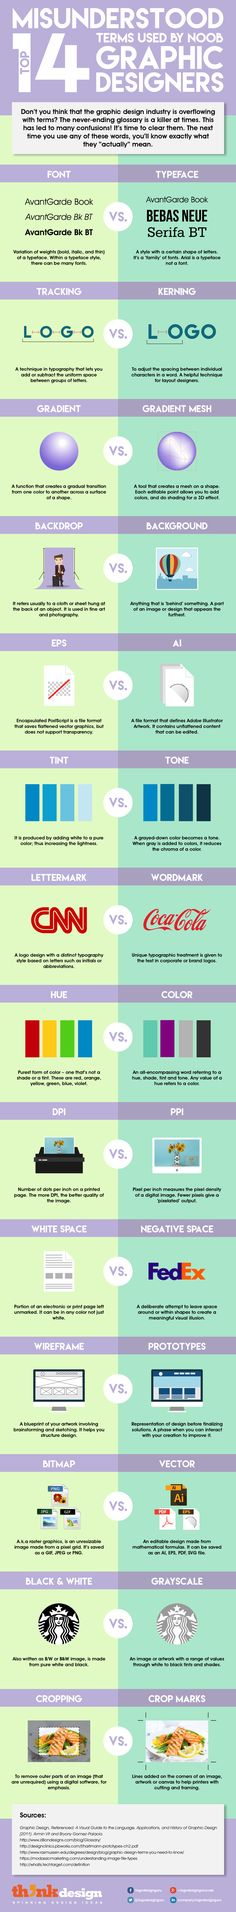 Top 14 Misunderstood Terms Used by Noob Graphic Designers - #infographic